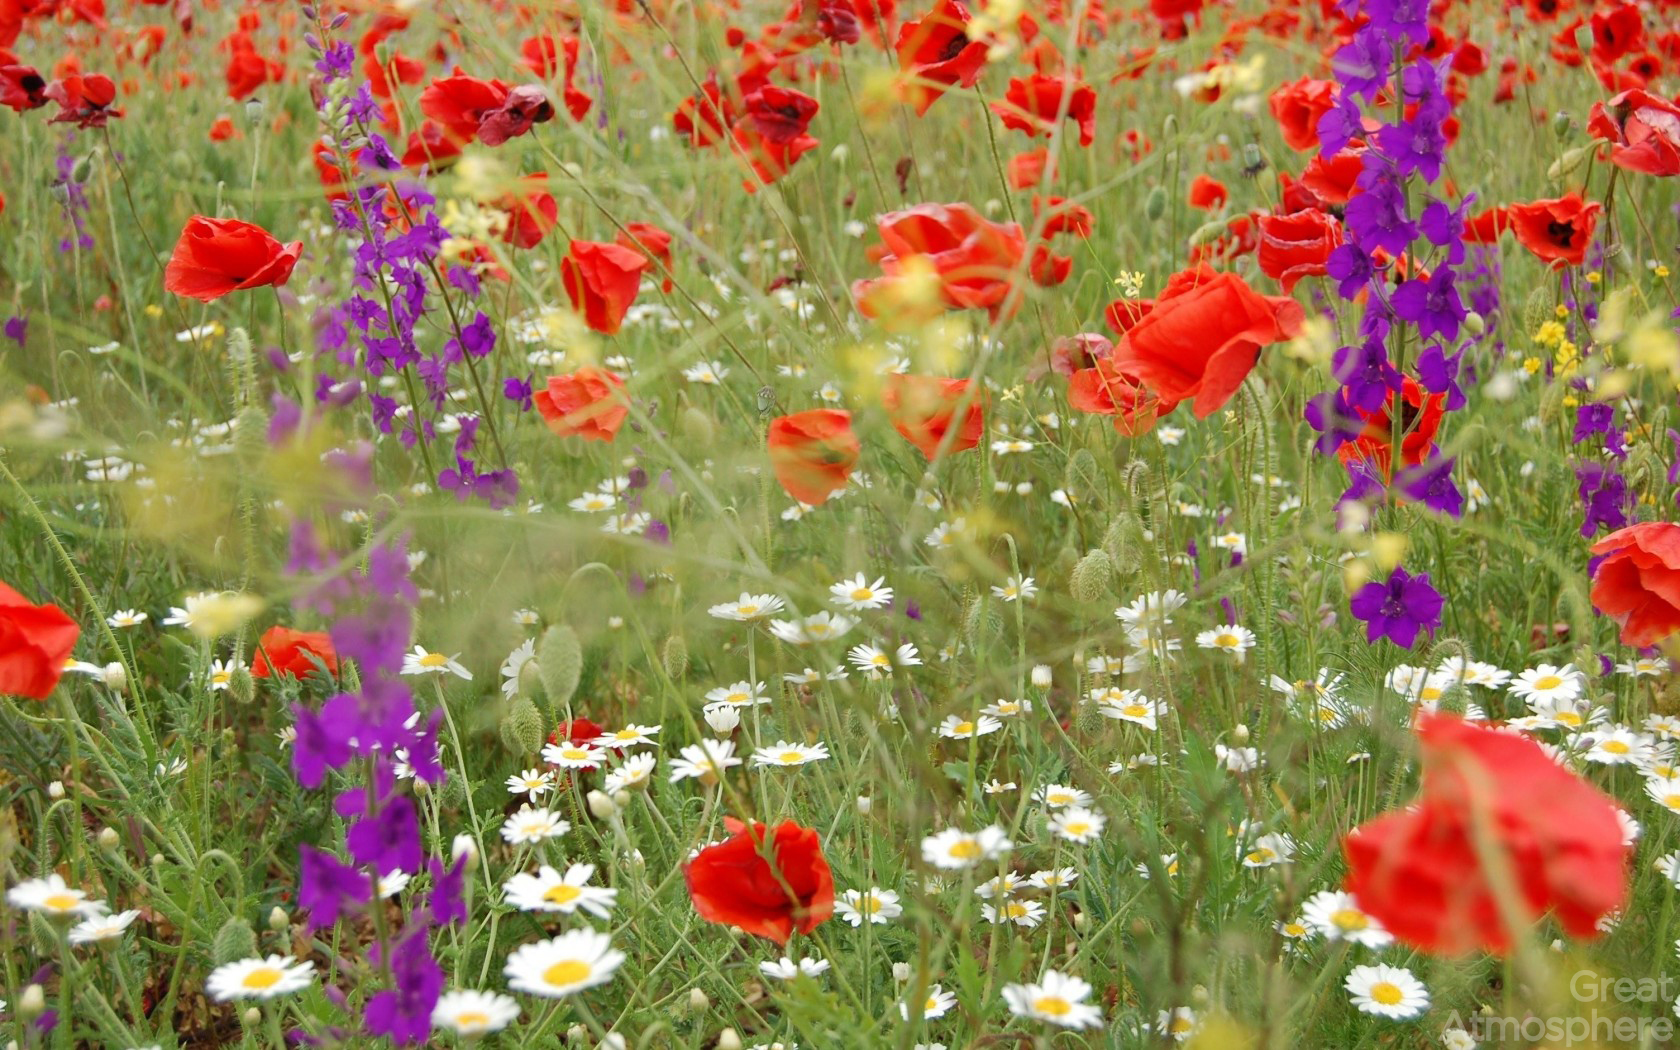 daisies_poppies_flowers_field_summer_nature_relaxation_blur_nature_landscapes_photography_wallpapers_great_atmosphere